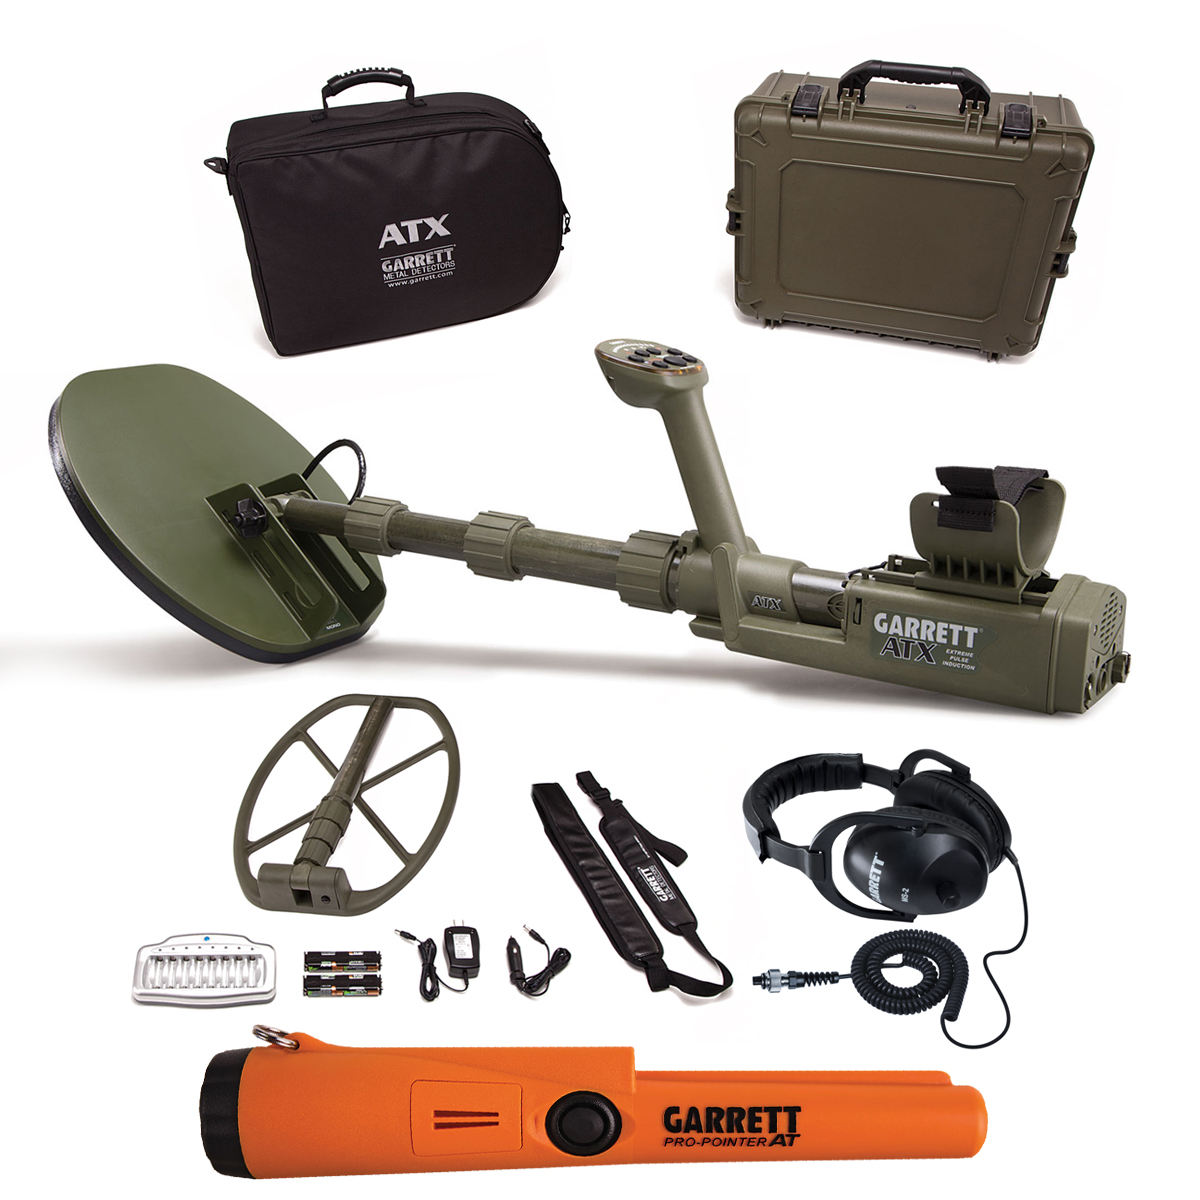 In Stock New GarrettS ATX Deepseeker Metal Detector with 2 Coils & Pro-Pointers AT Pinpointer